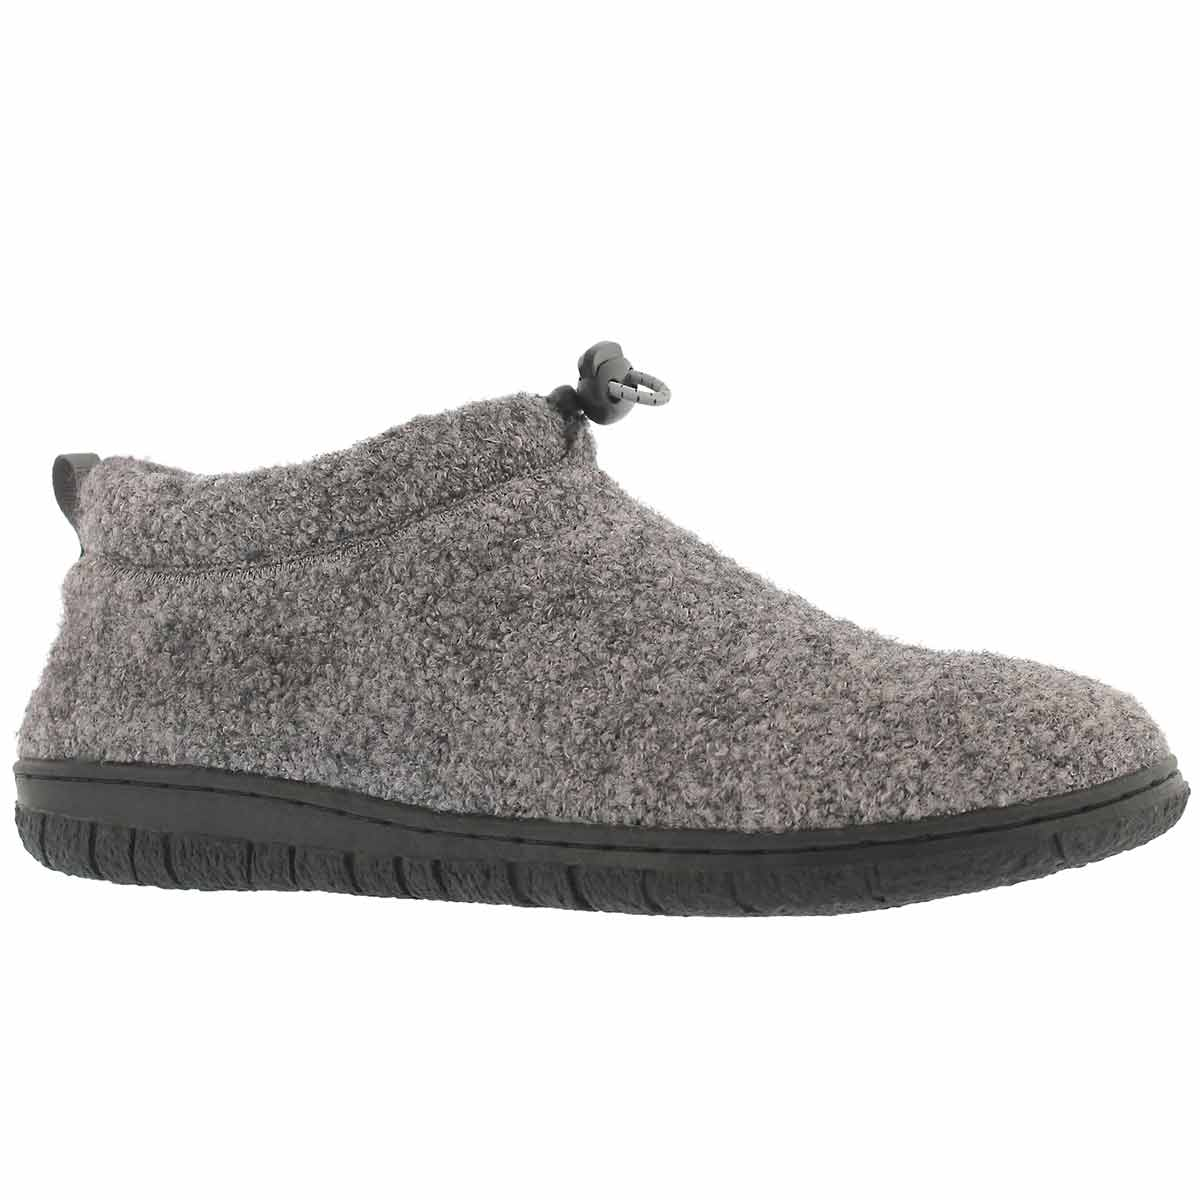 Lds Nancy gry mem foam clsd bck slipper